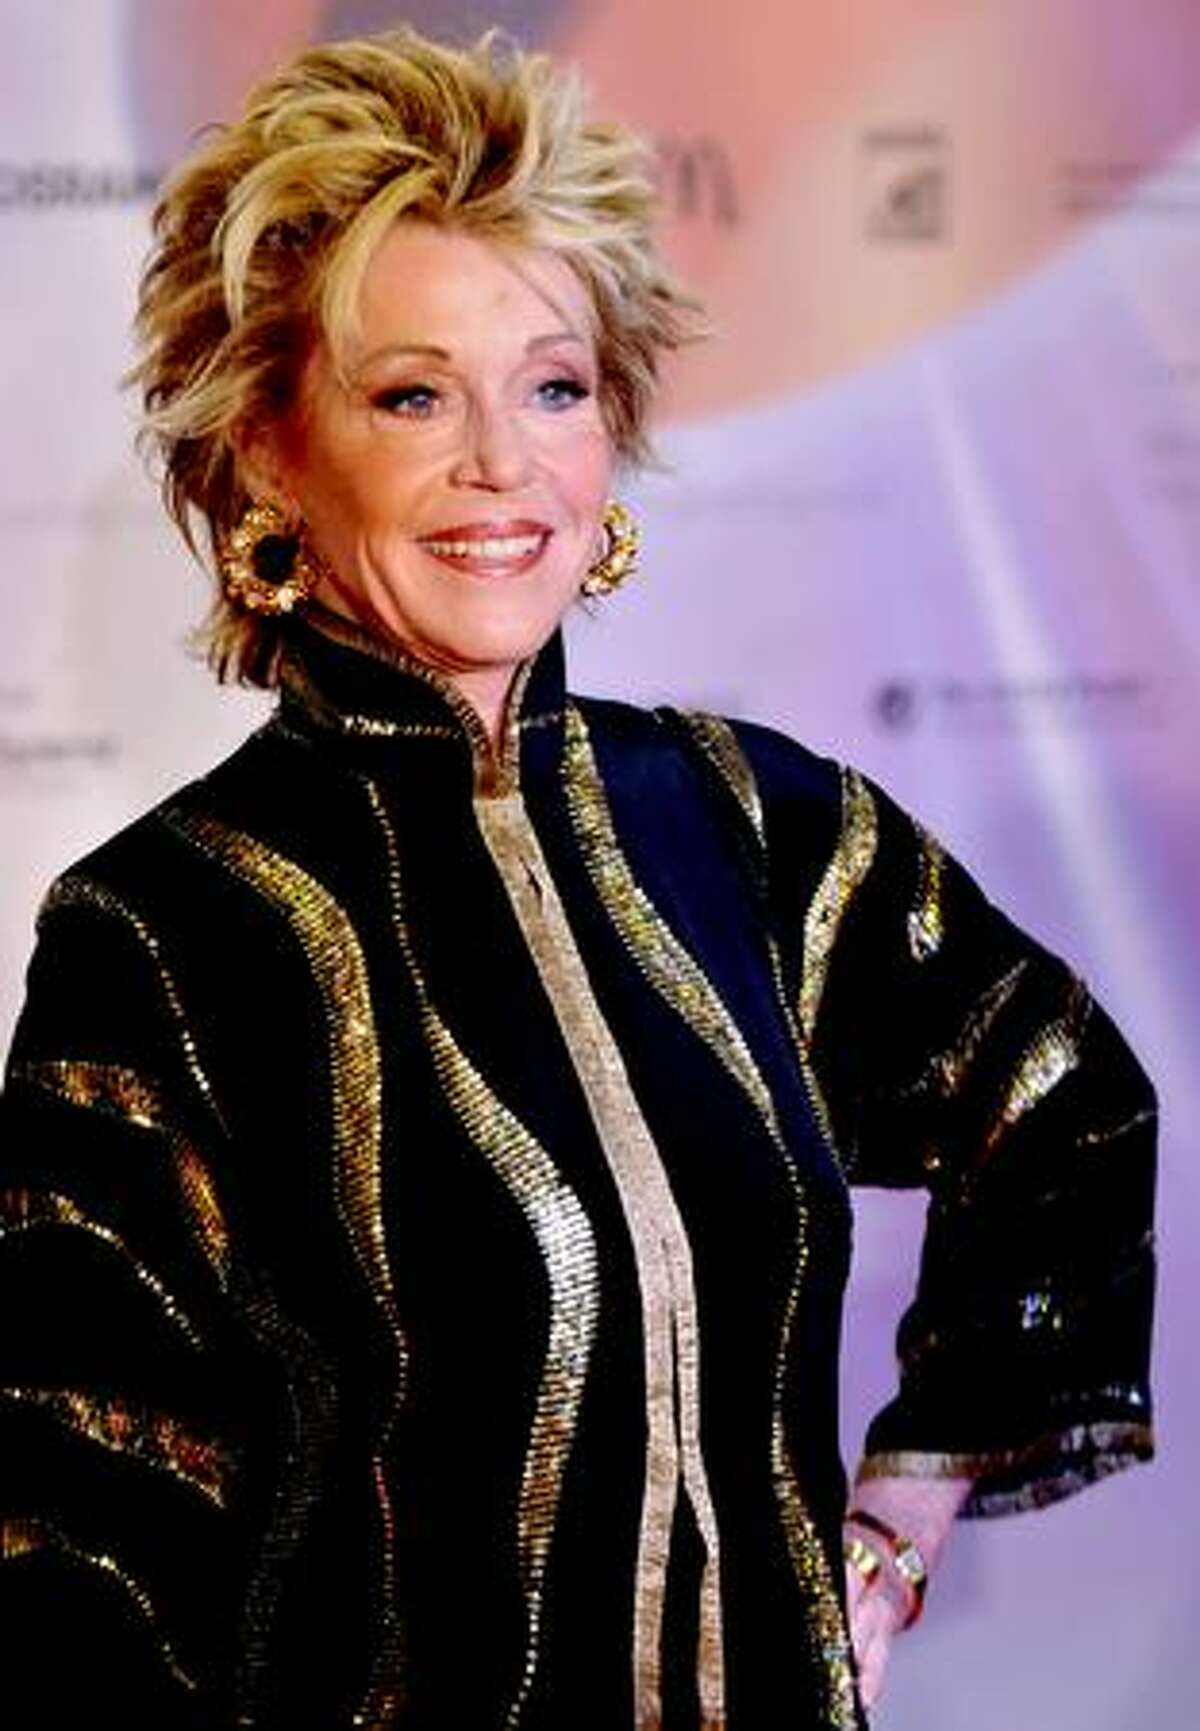 Actress Jane Fonda poses ahead of the German Sustainability Awards in Duesseldorf, western Germany.